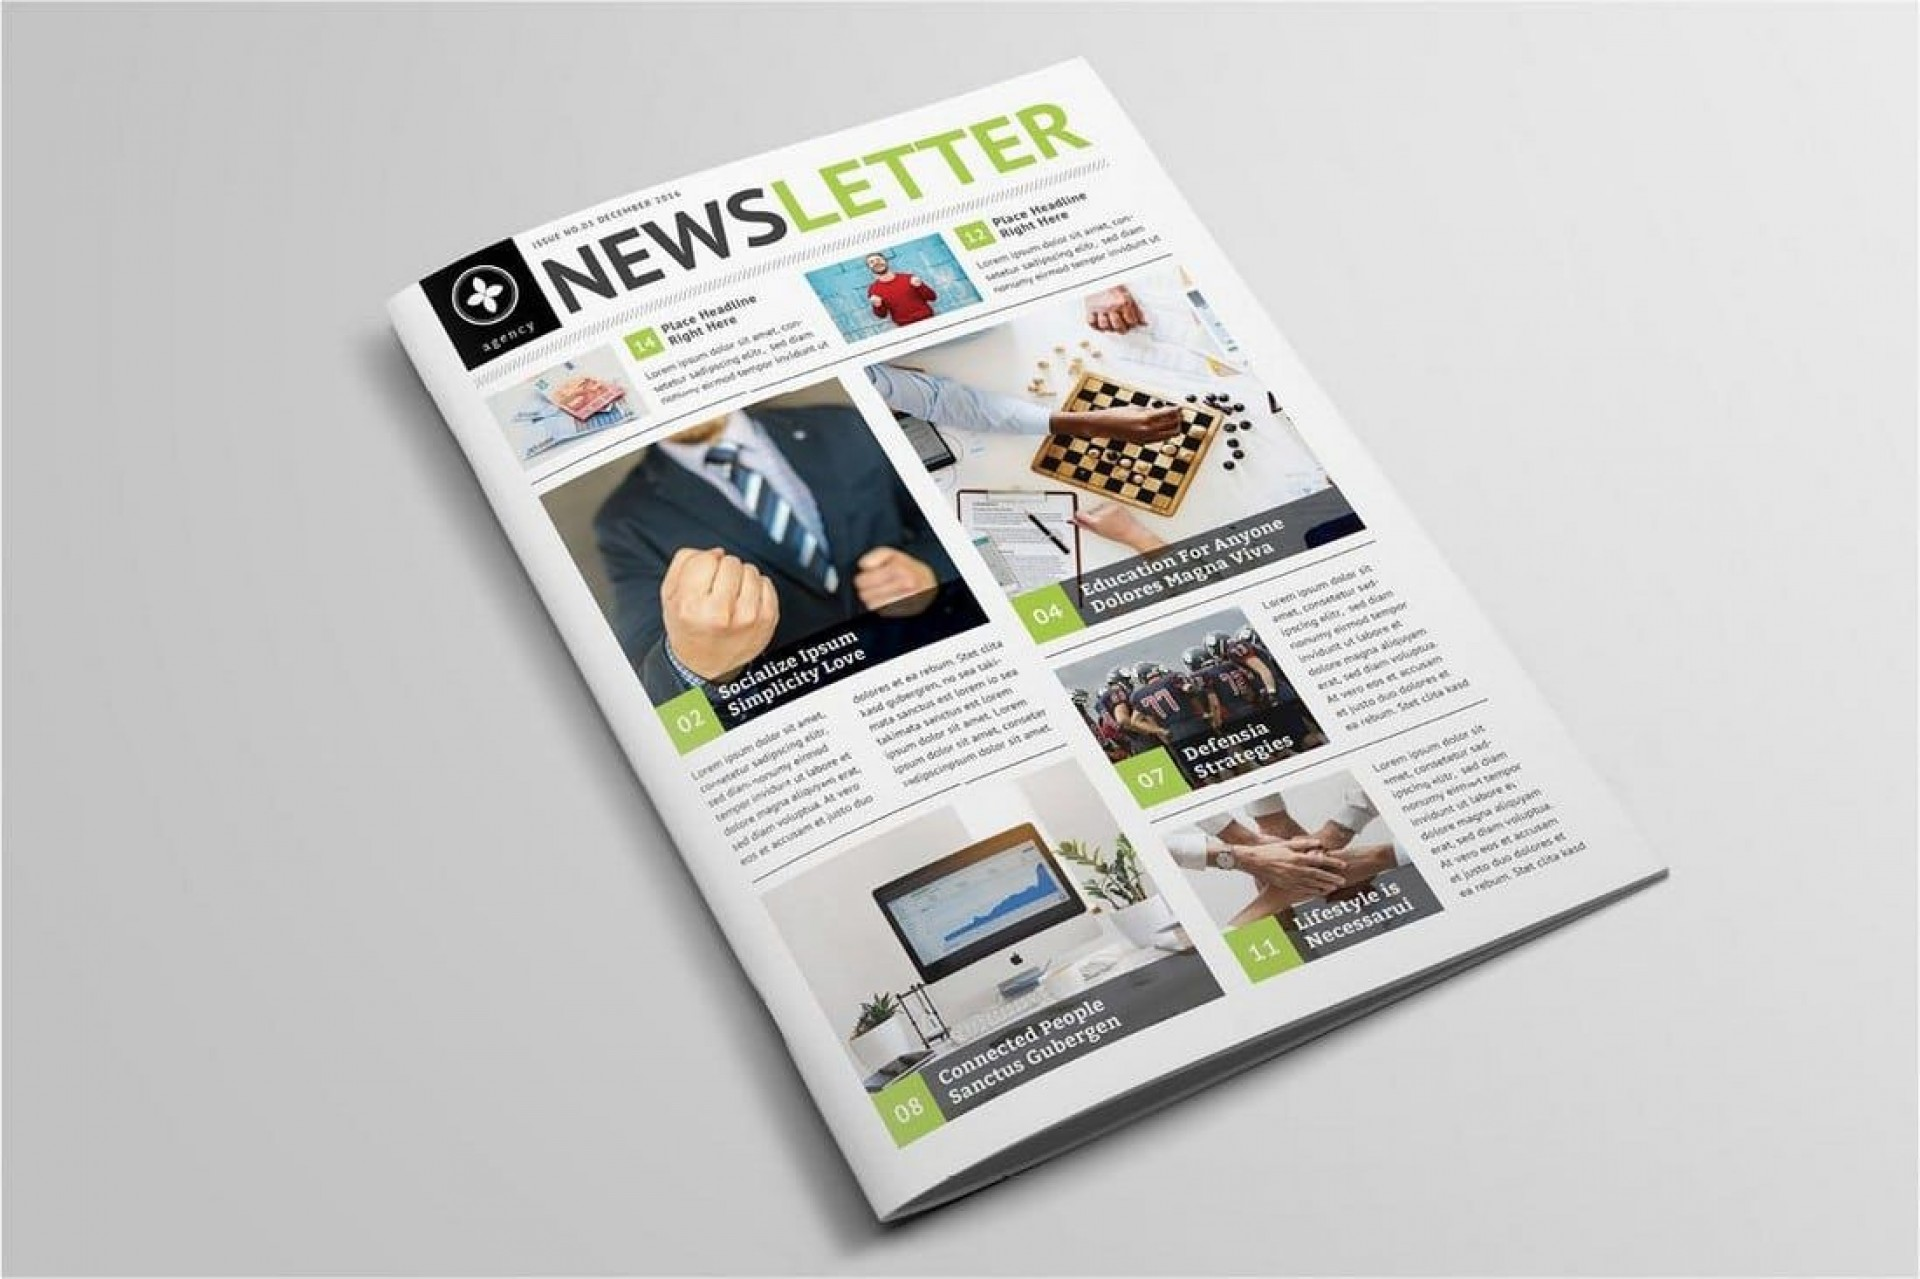 006 Awful Indesign Newsletter Template Free Highest Clarity  Cs6 Email Adobe Download1920